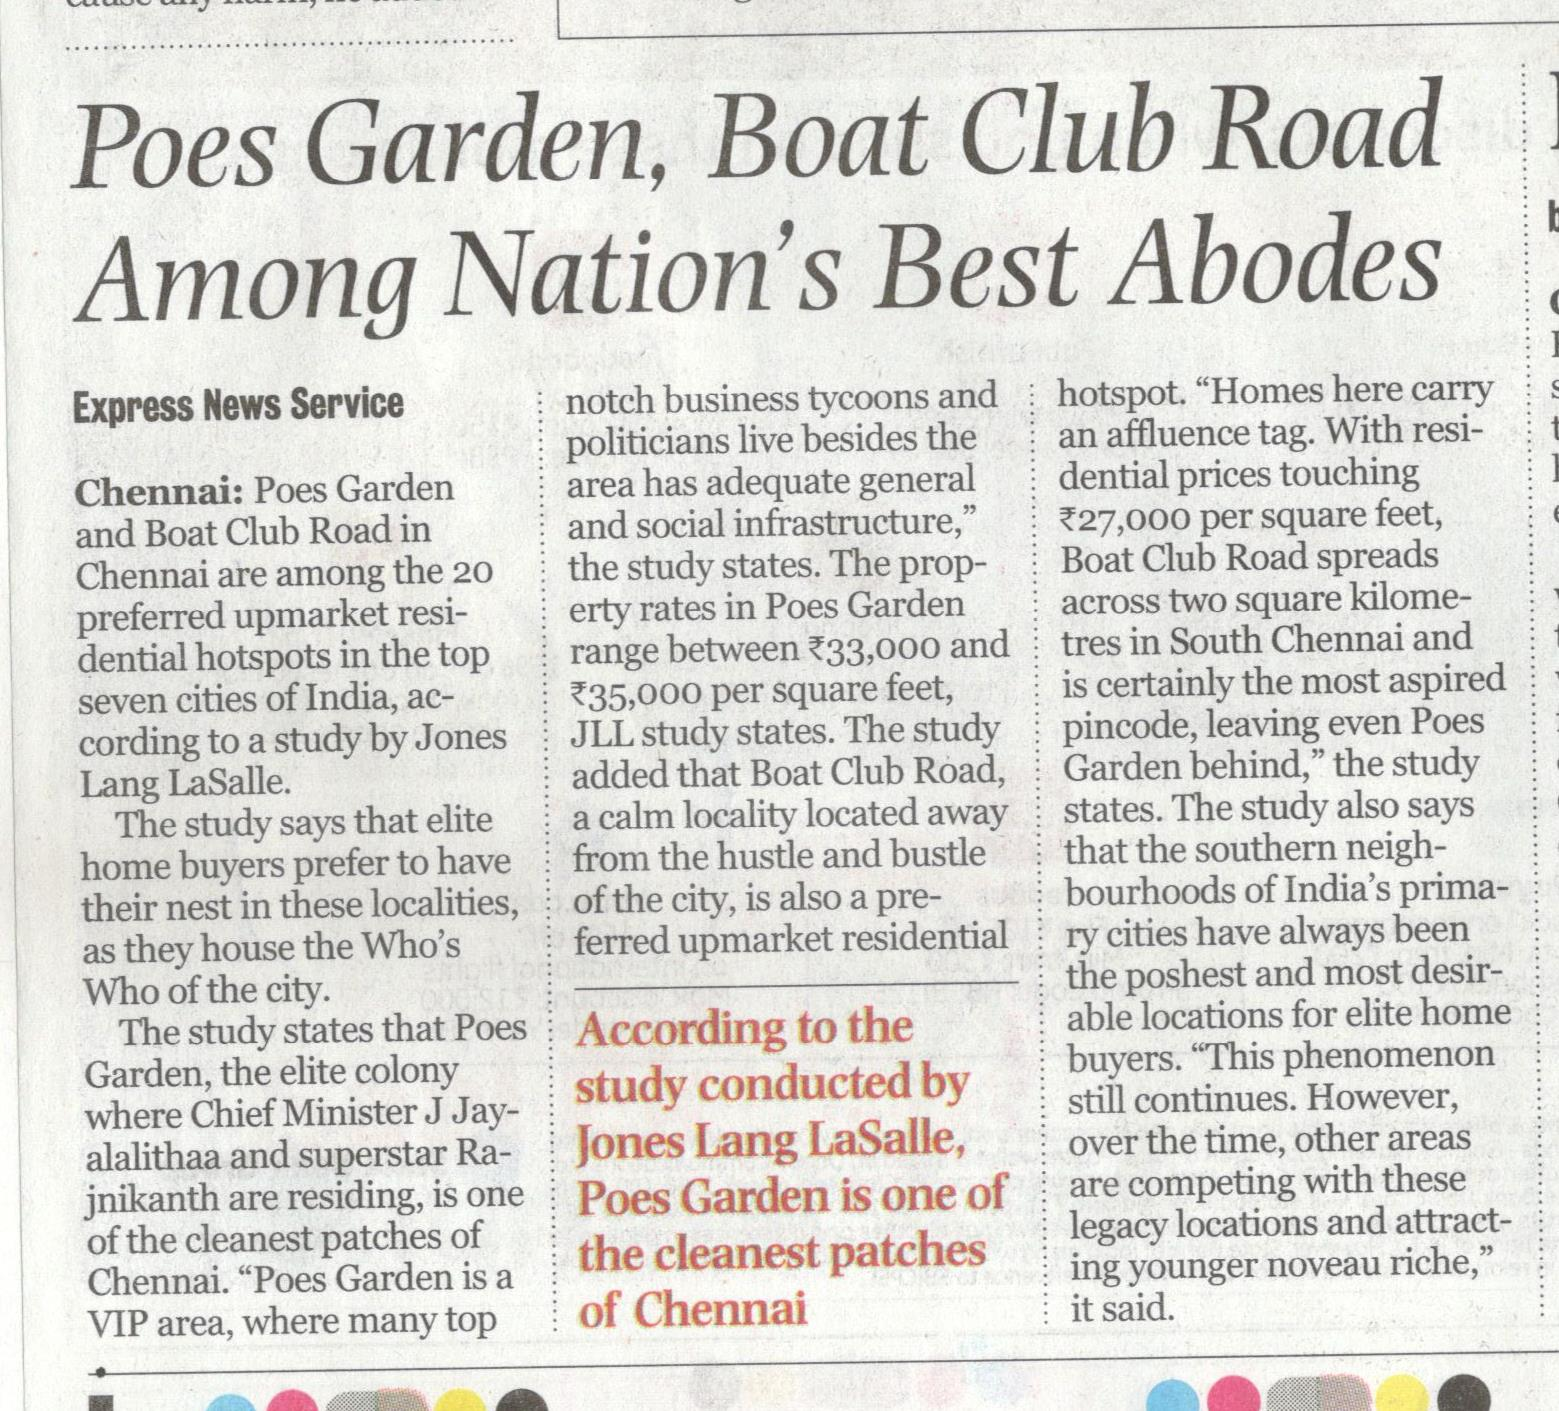 Poes Garden, Boat Club Road Among Nation\